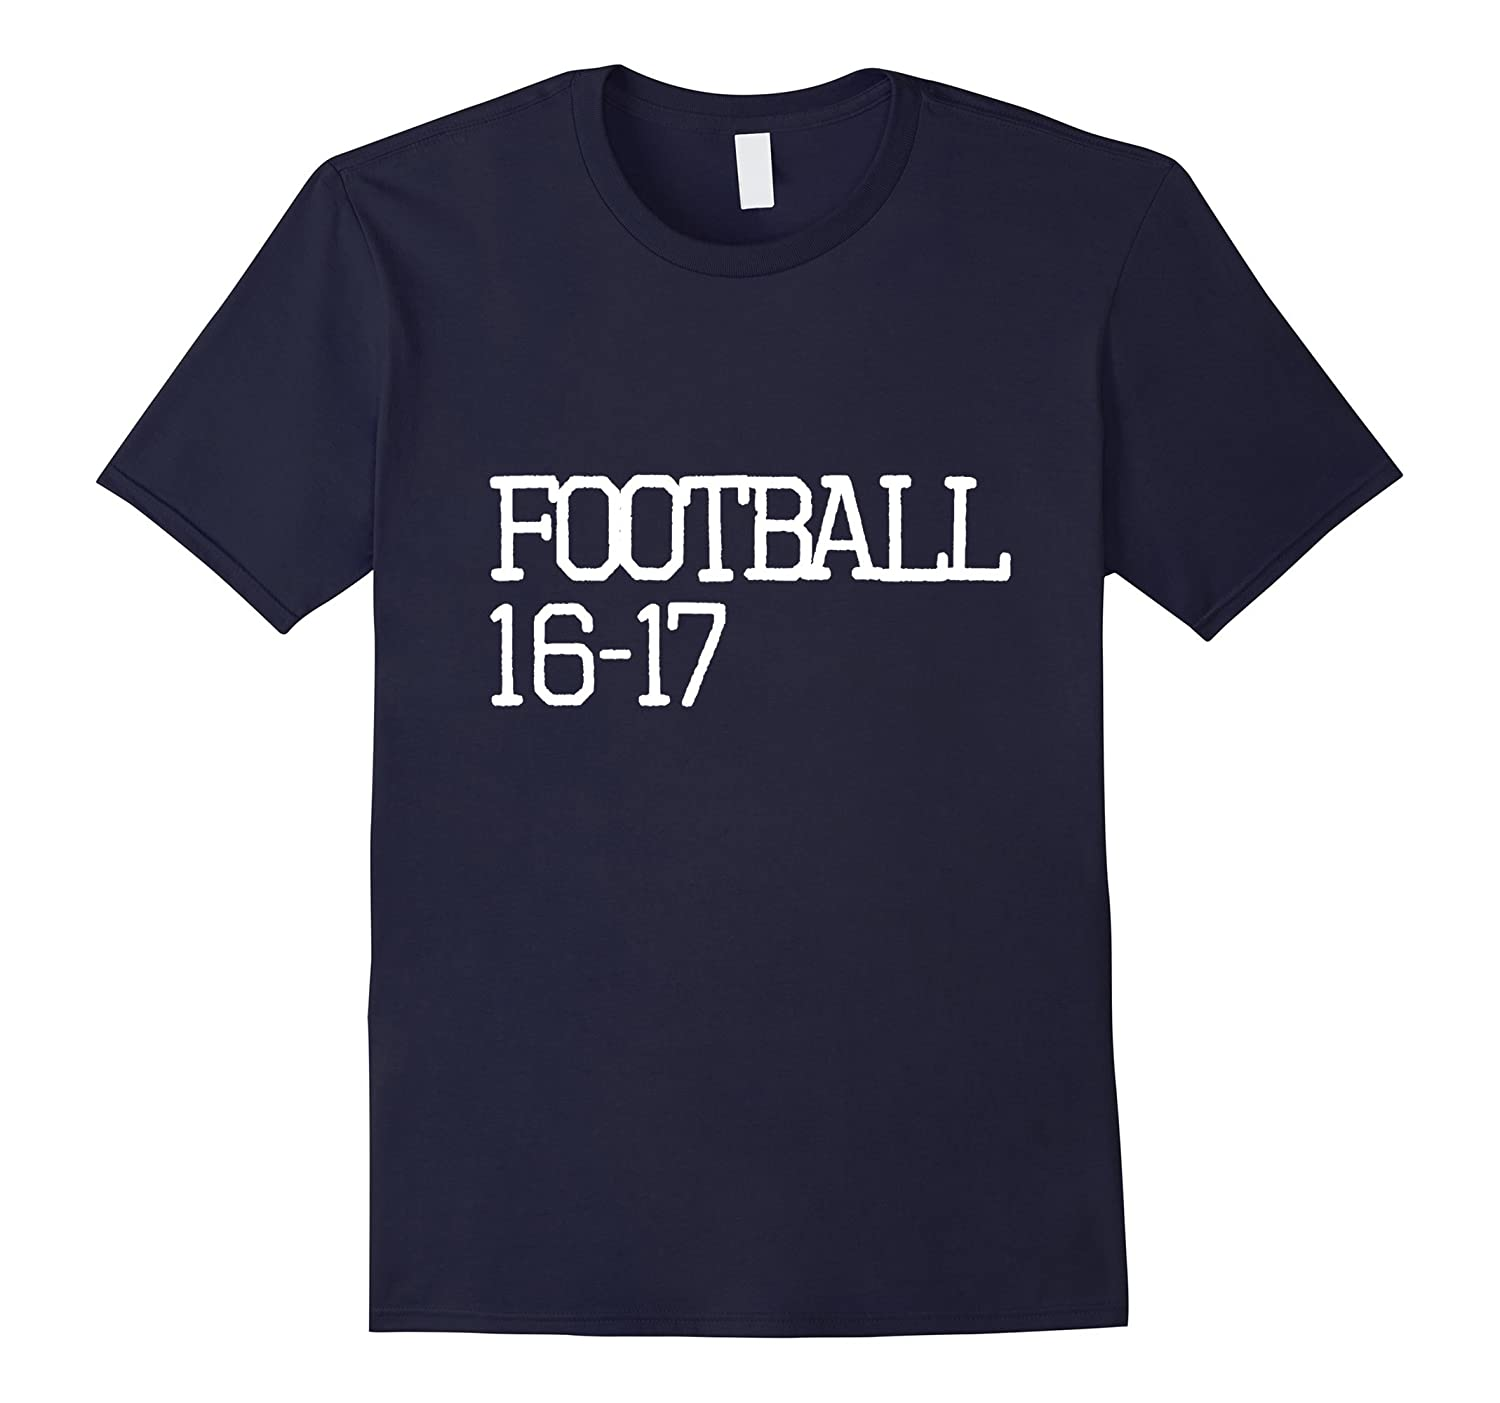 Football - Simple White Design 16 - 17-BN